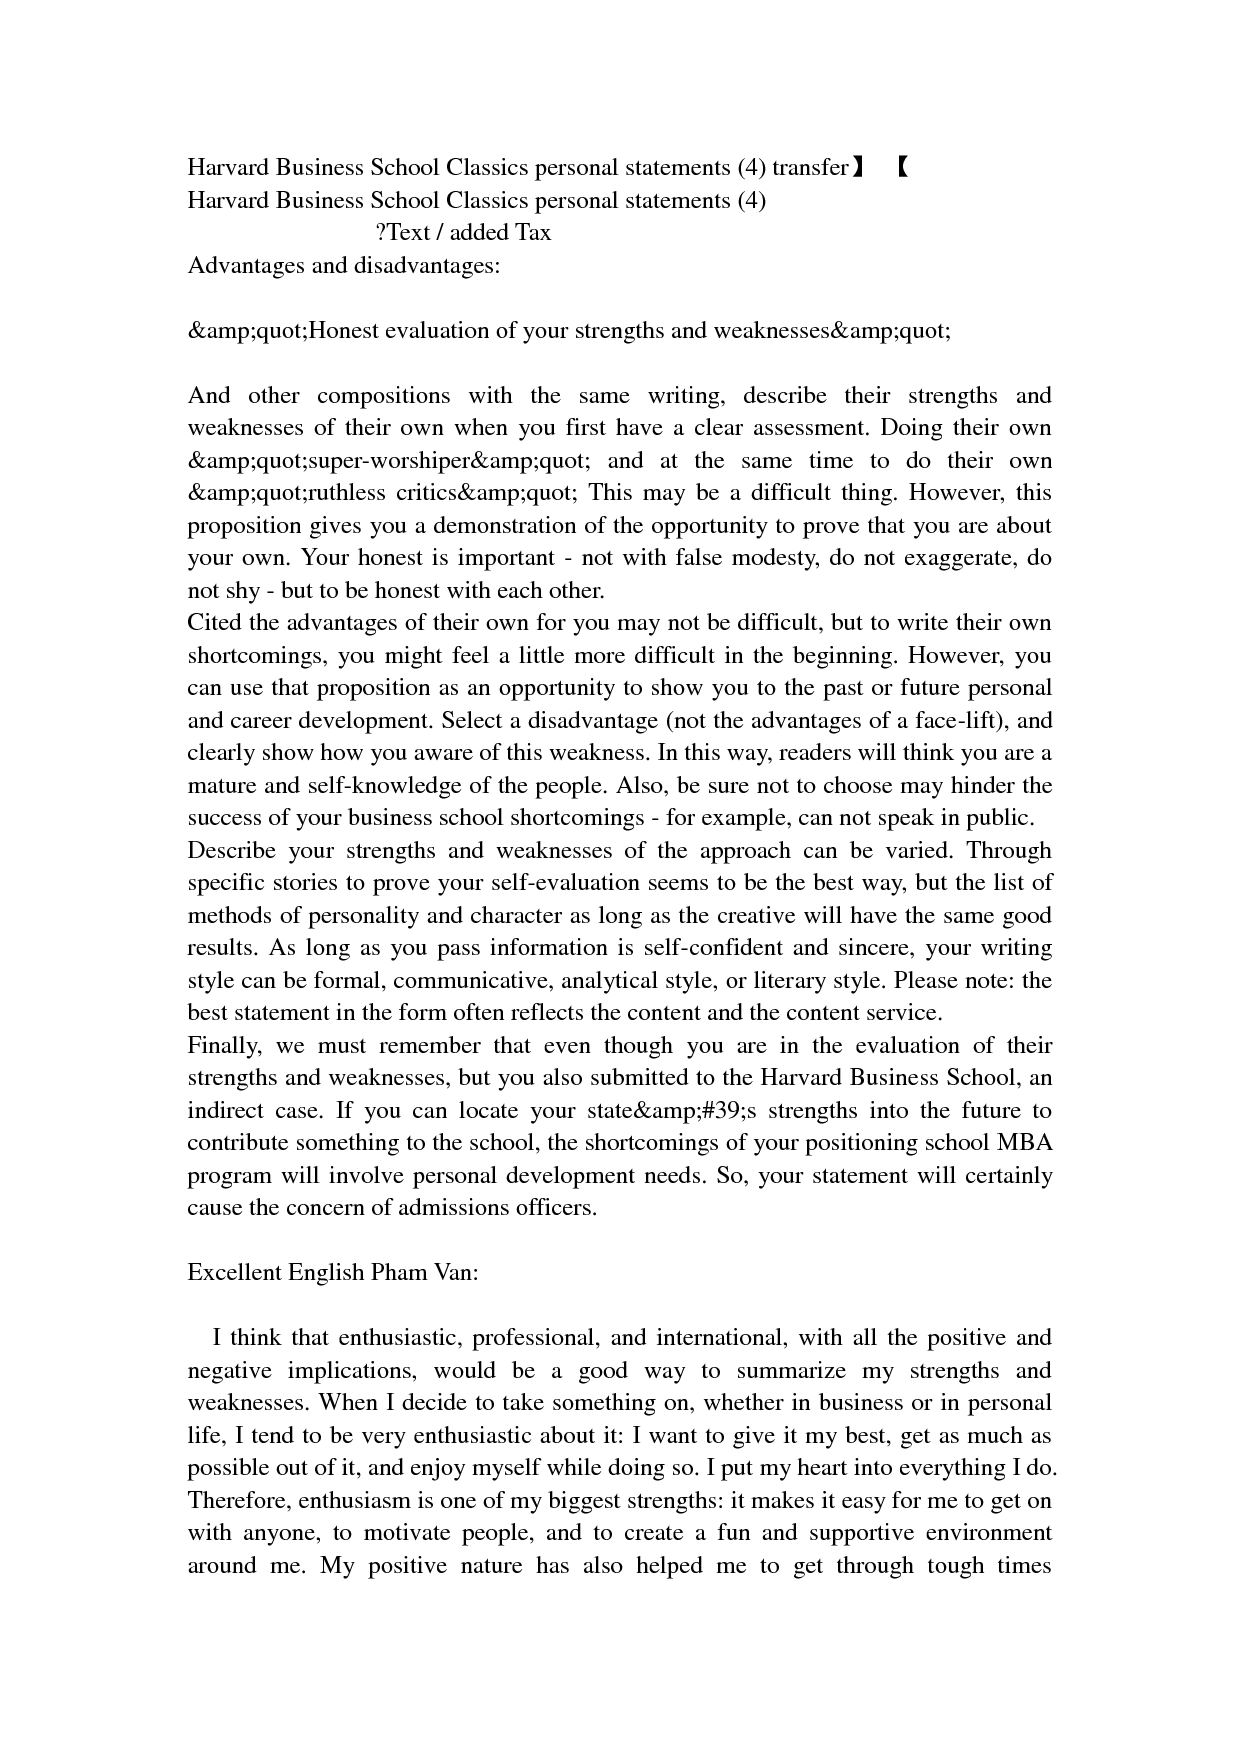 psychology extended essay research questions Should i still do my essay in psychology then and if so, any ideas on what topic/ research question i should choose i'm highly interested in intelligence, memory, learning, and development i'm just starting my extended essay now and i'm sad to say i'm not very familiar with the guidelines or anything but.